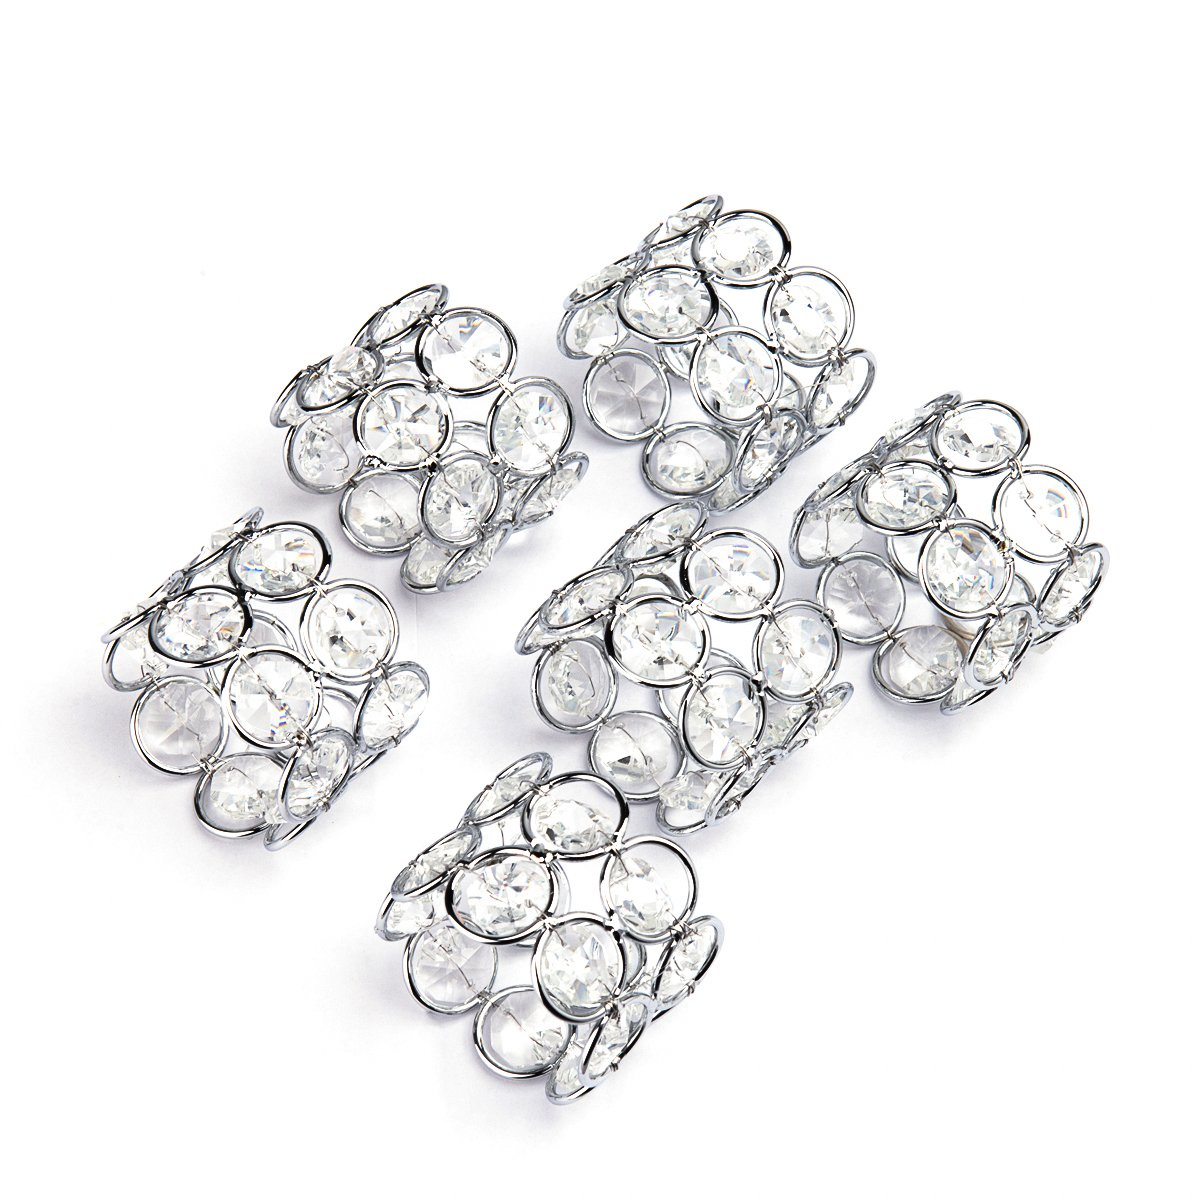 Feyarl Handmade Napkin Rings Sparkly Crystal Beads Napkin Holders Set of 6 pcs for Wedding Centerpieces Party Dinnier Special Occasions Celebration Romantic Candlelit Banquet